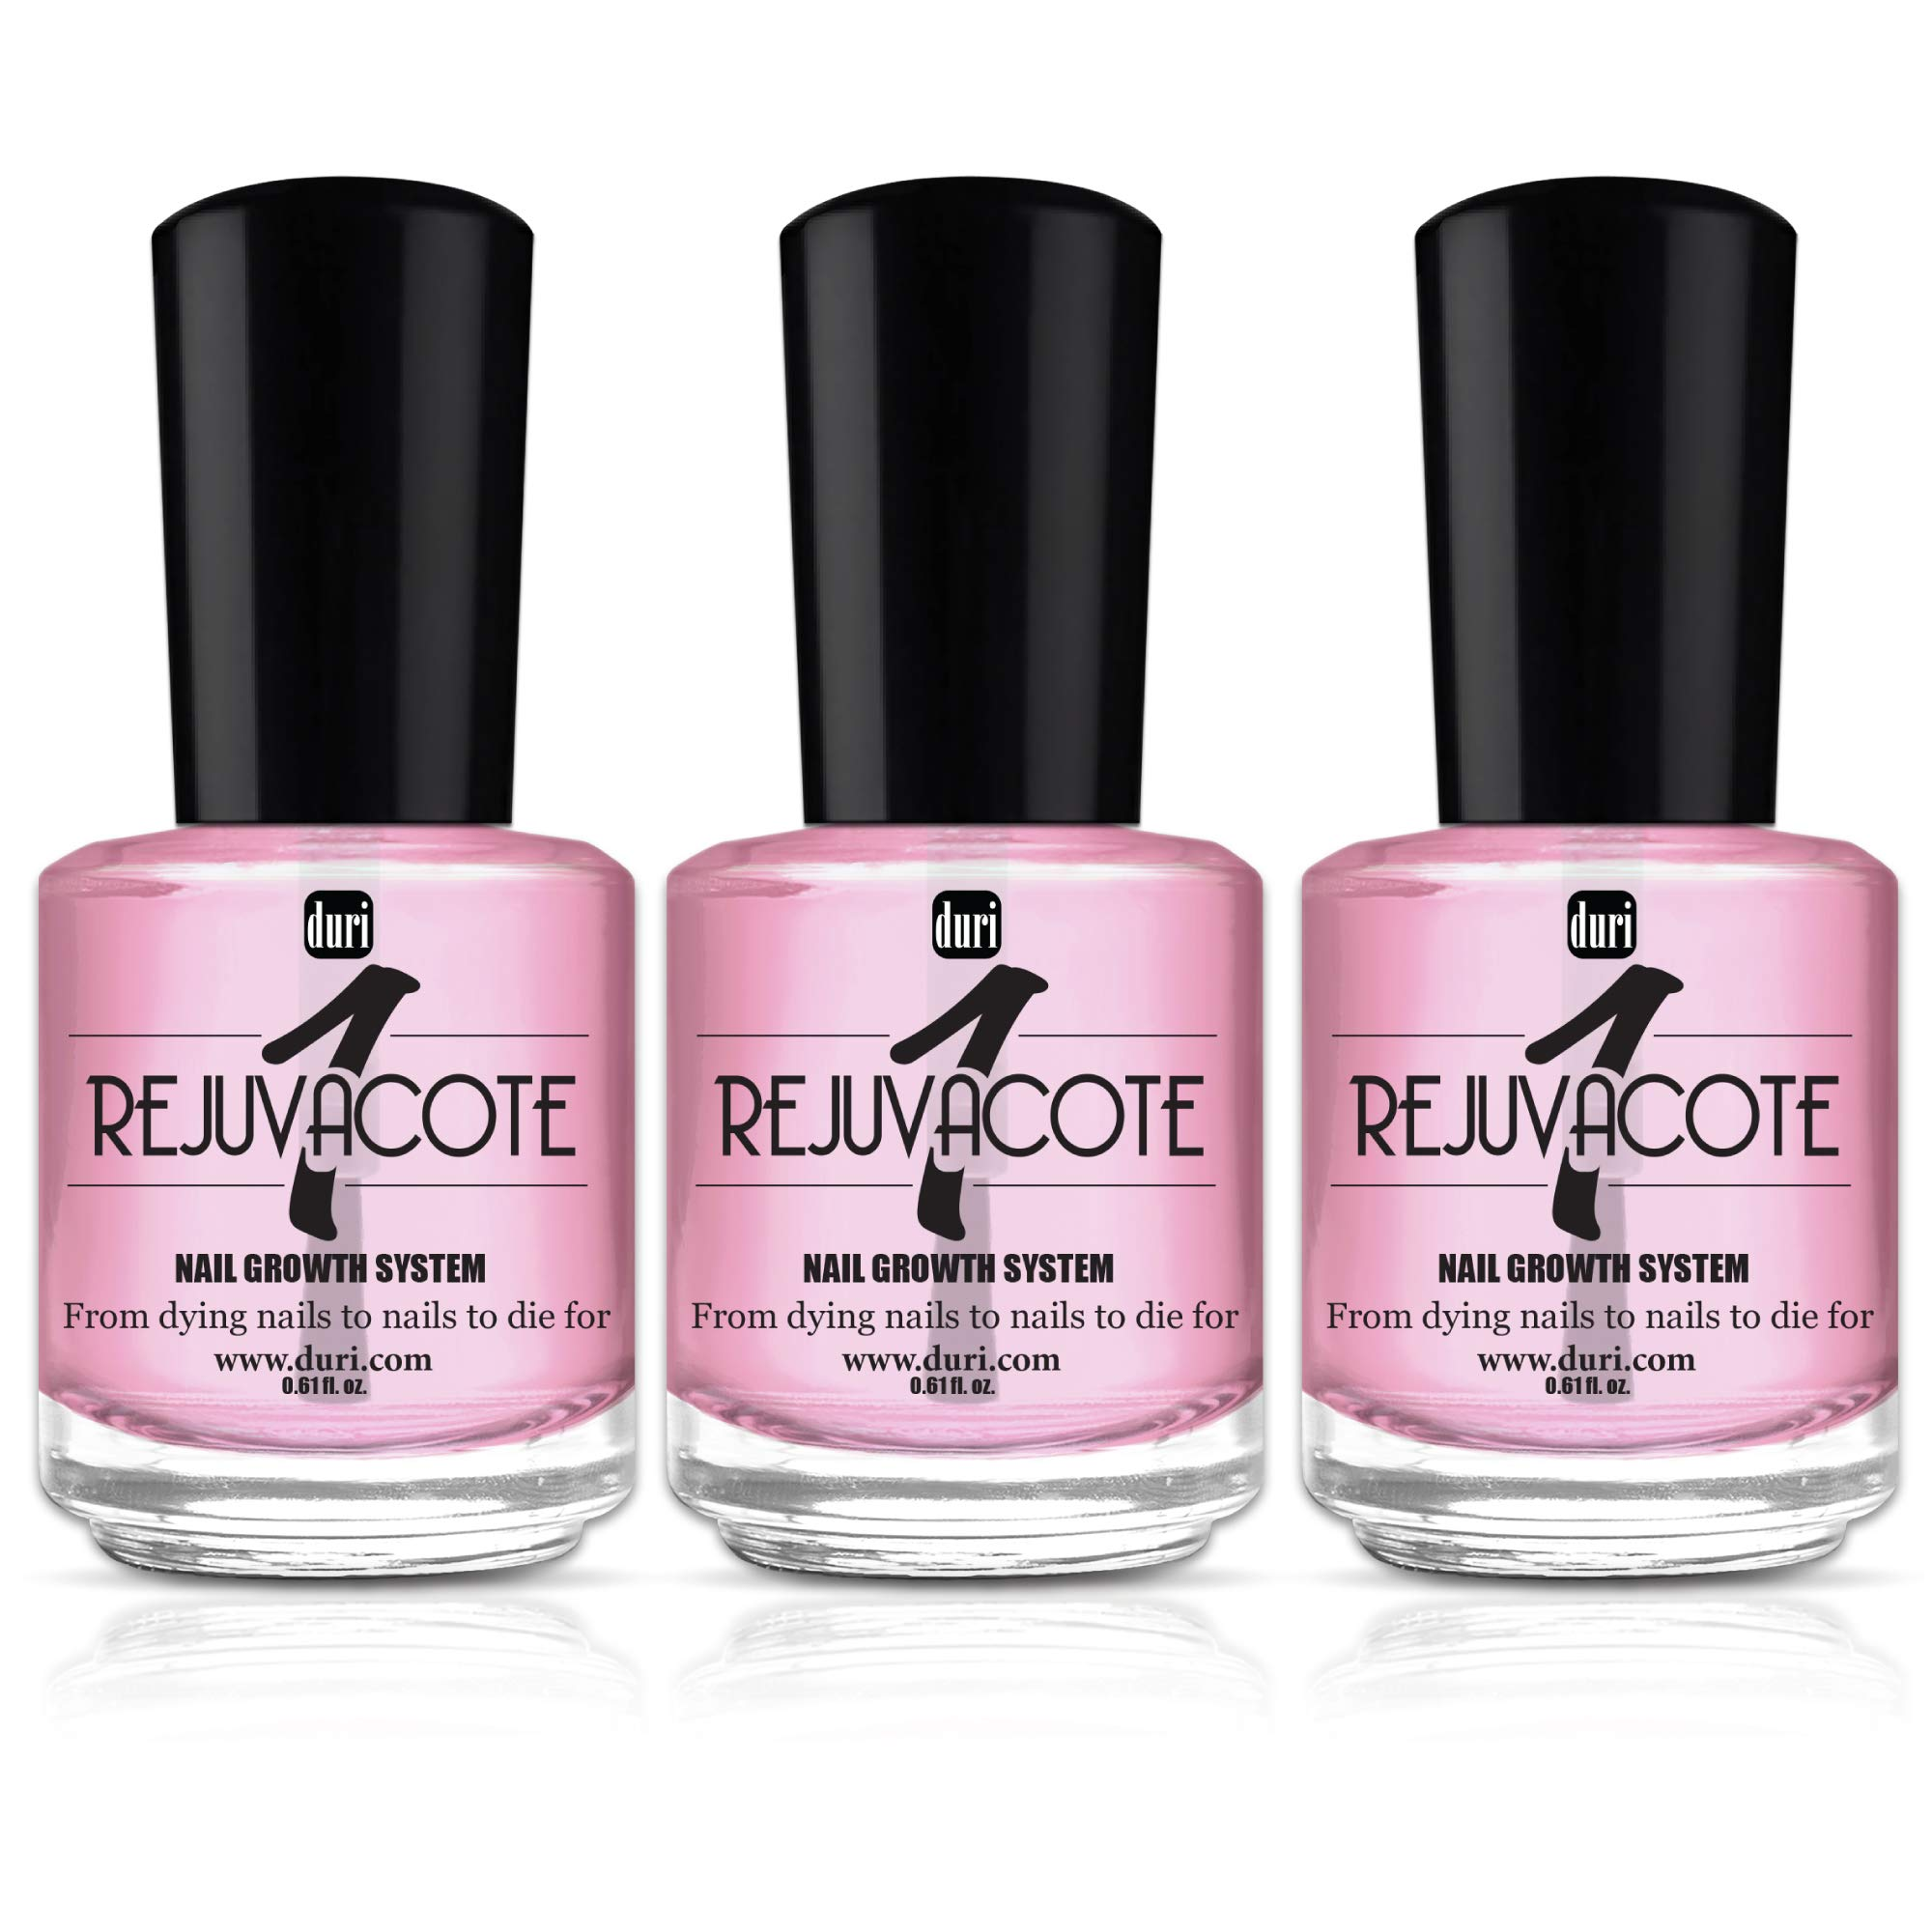 duri Rejuvacote 1 Original Maximum Strength Nail Growth System Base, Top Coat - Treatment, Nail Repair (Pack of 3)